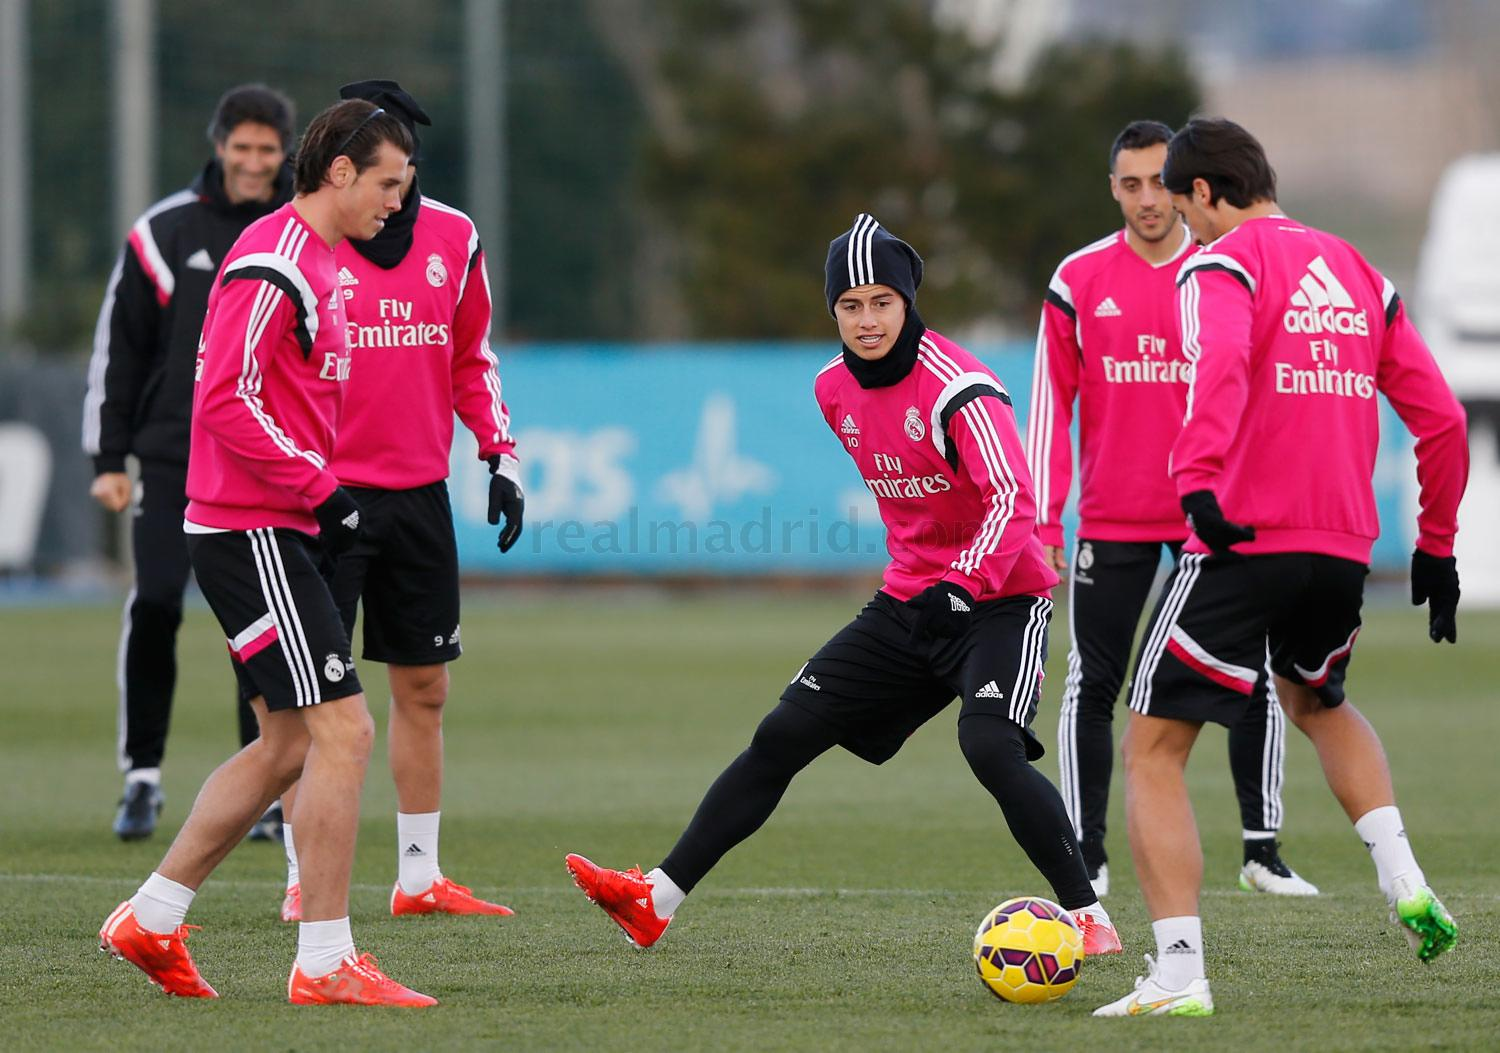 Real Madrid - Entrenamiento del Real Madrid - 03-02-2015